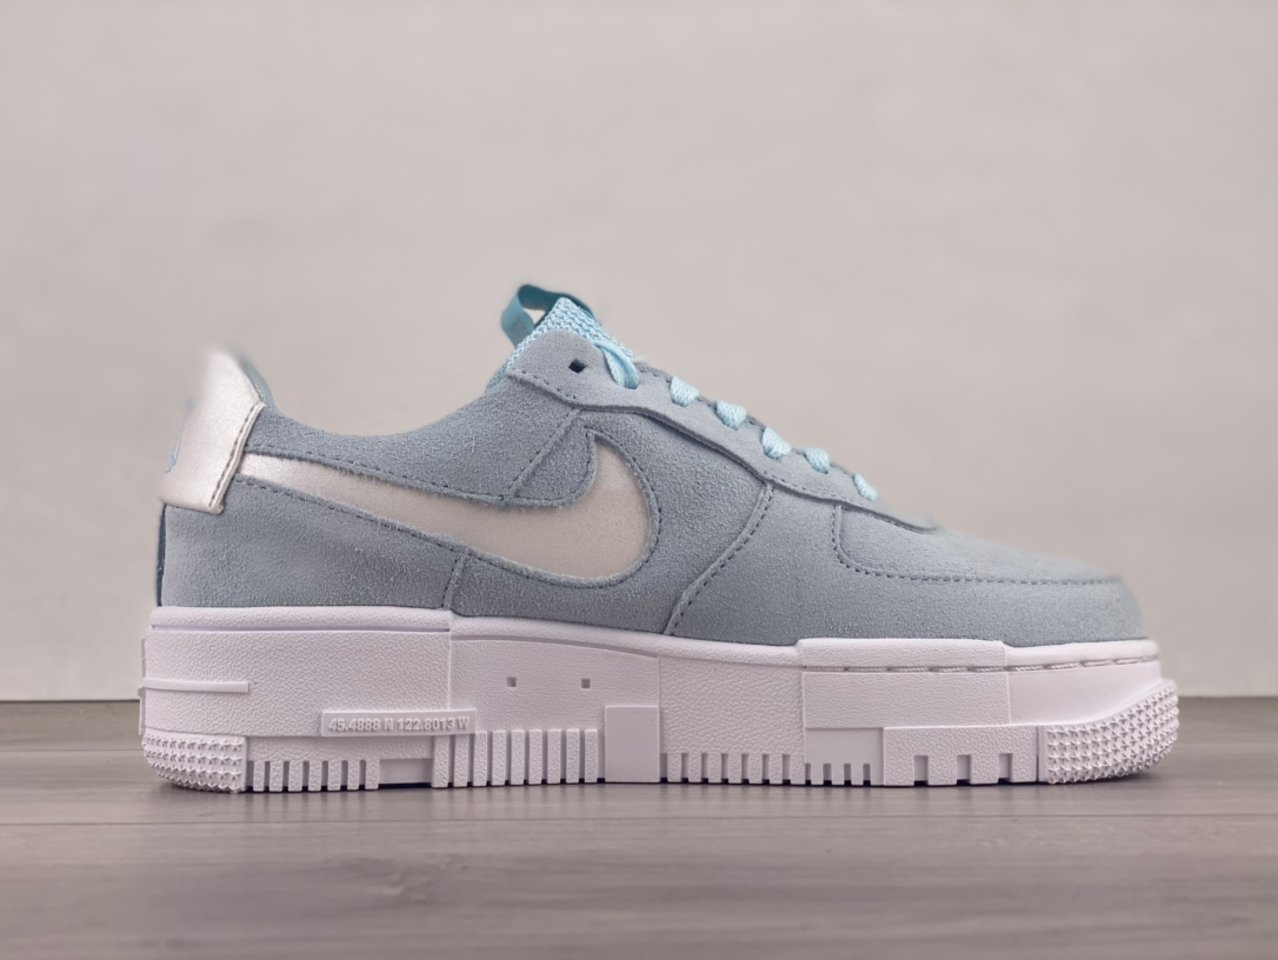 Nike Air Force 1 Pixel Glacier Blue Casual Shoes DH3855-400 Sell